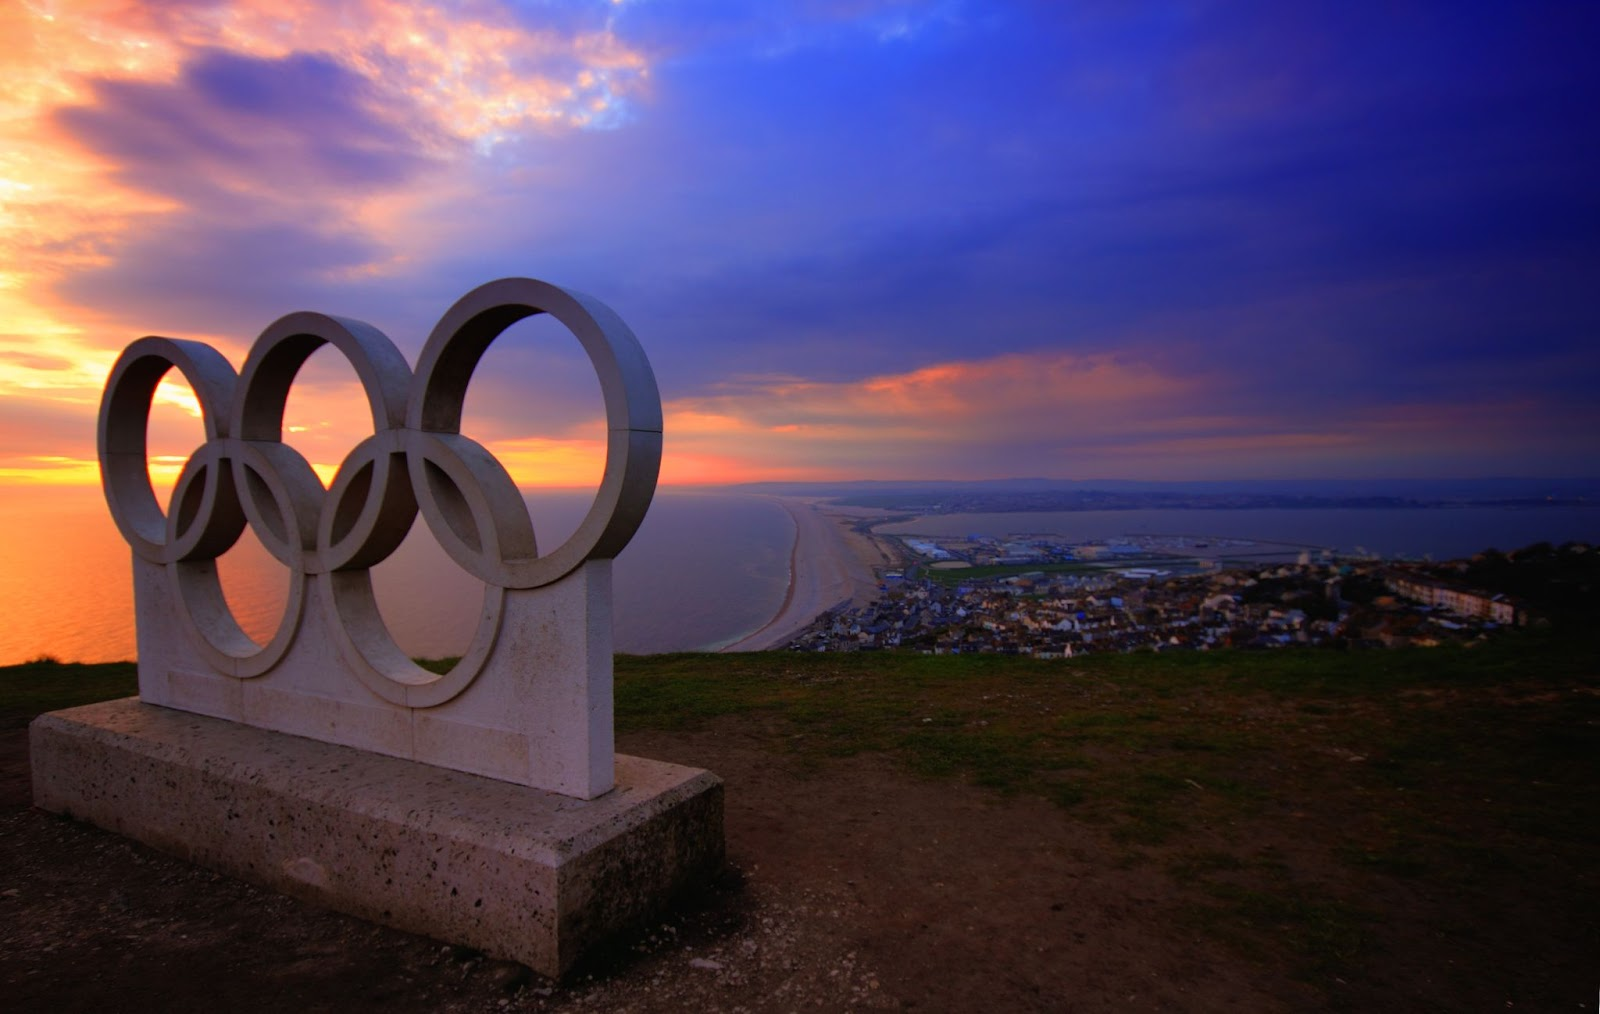 The Olympic athletes use treatment trends in 2021